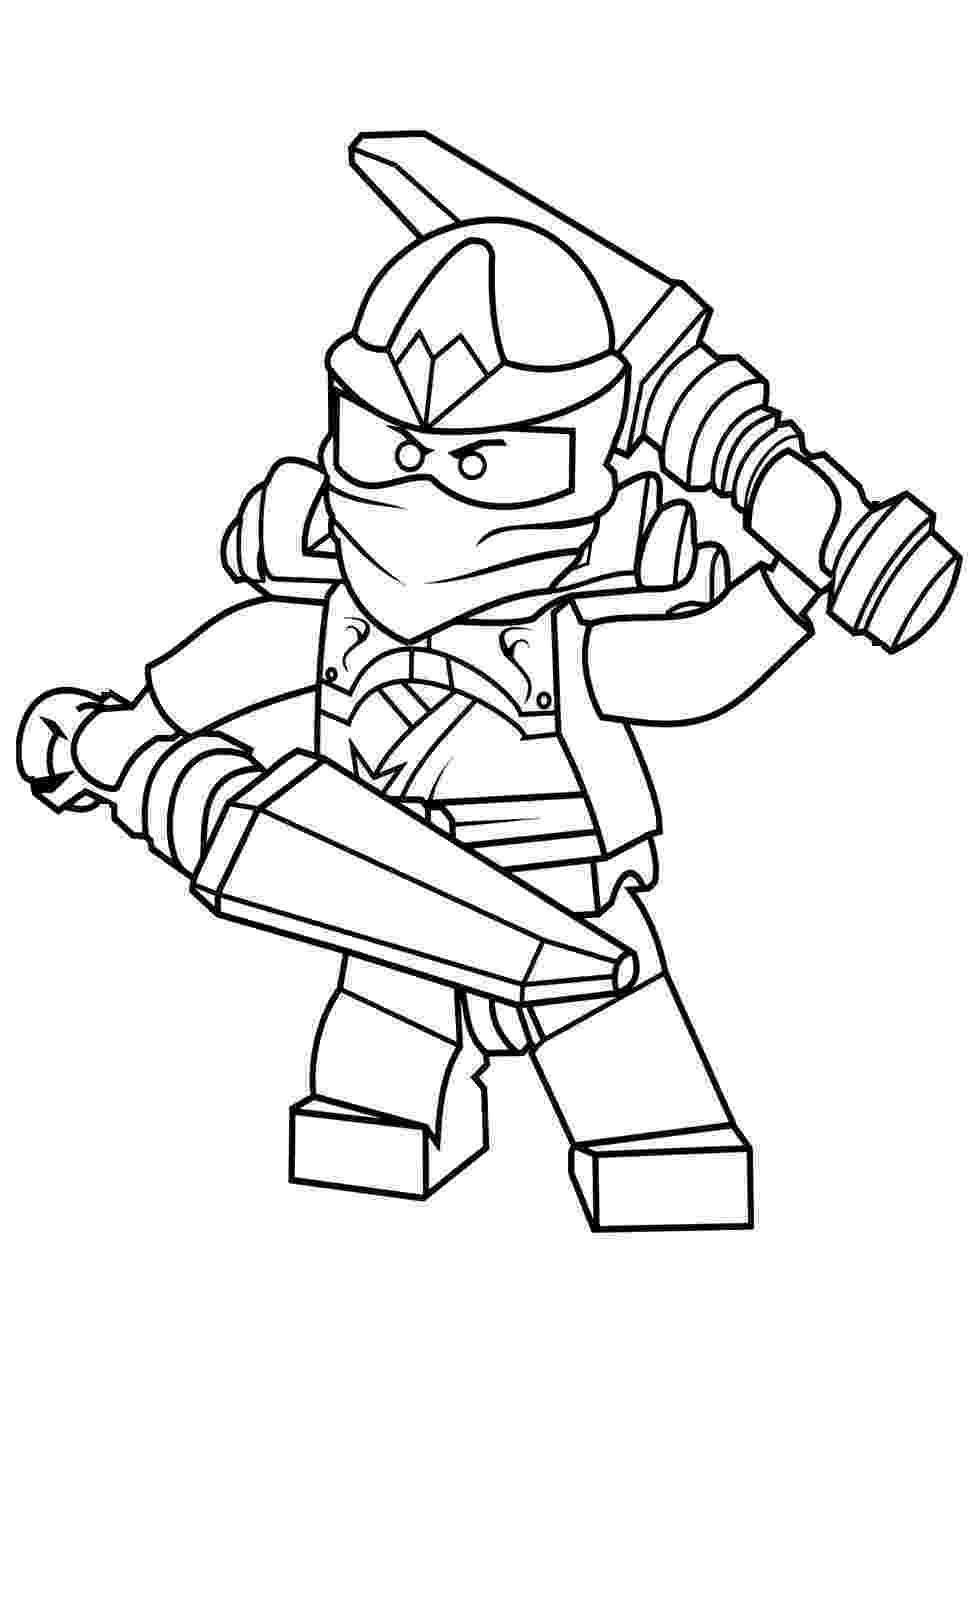 ninjago colouring pages online lego ninjago coloring pages best coloring pages for kids ninjago pages colouring online